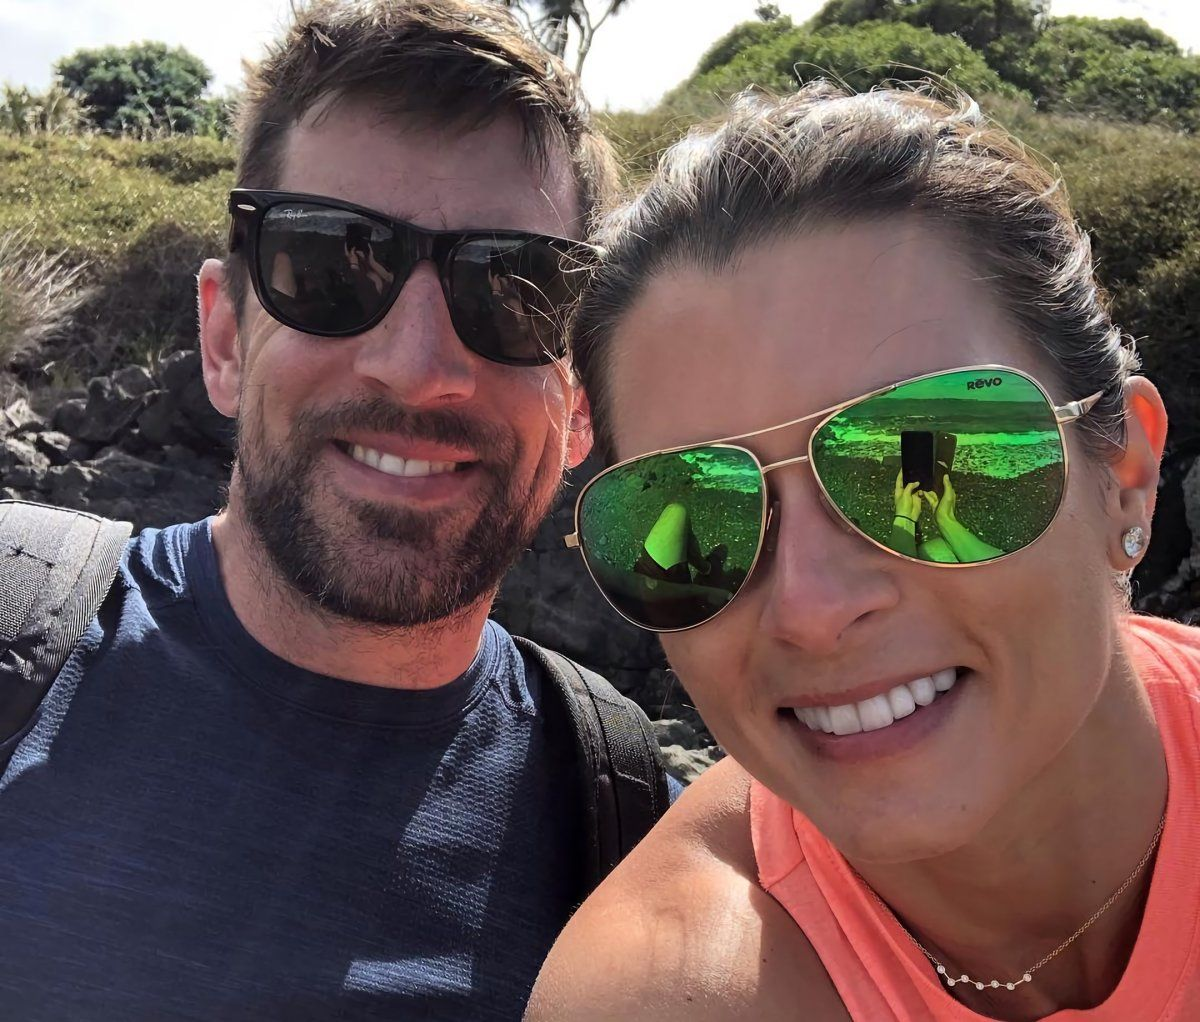 Danica Patrick And Aaron Rodgers Went On Vacation And Their Snaps Of New Zealand Are Just Stunning Scribol Com Danica Patrick Aaron Rodgers New Zealand